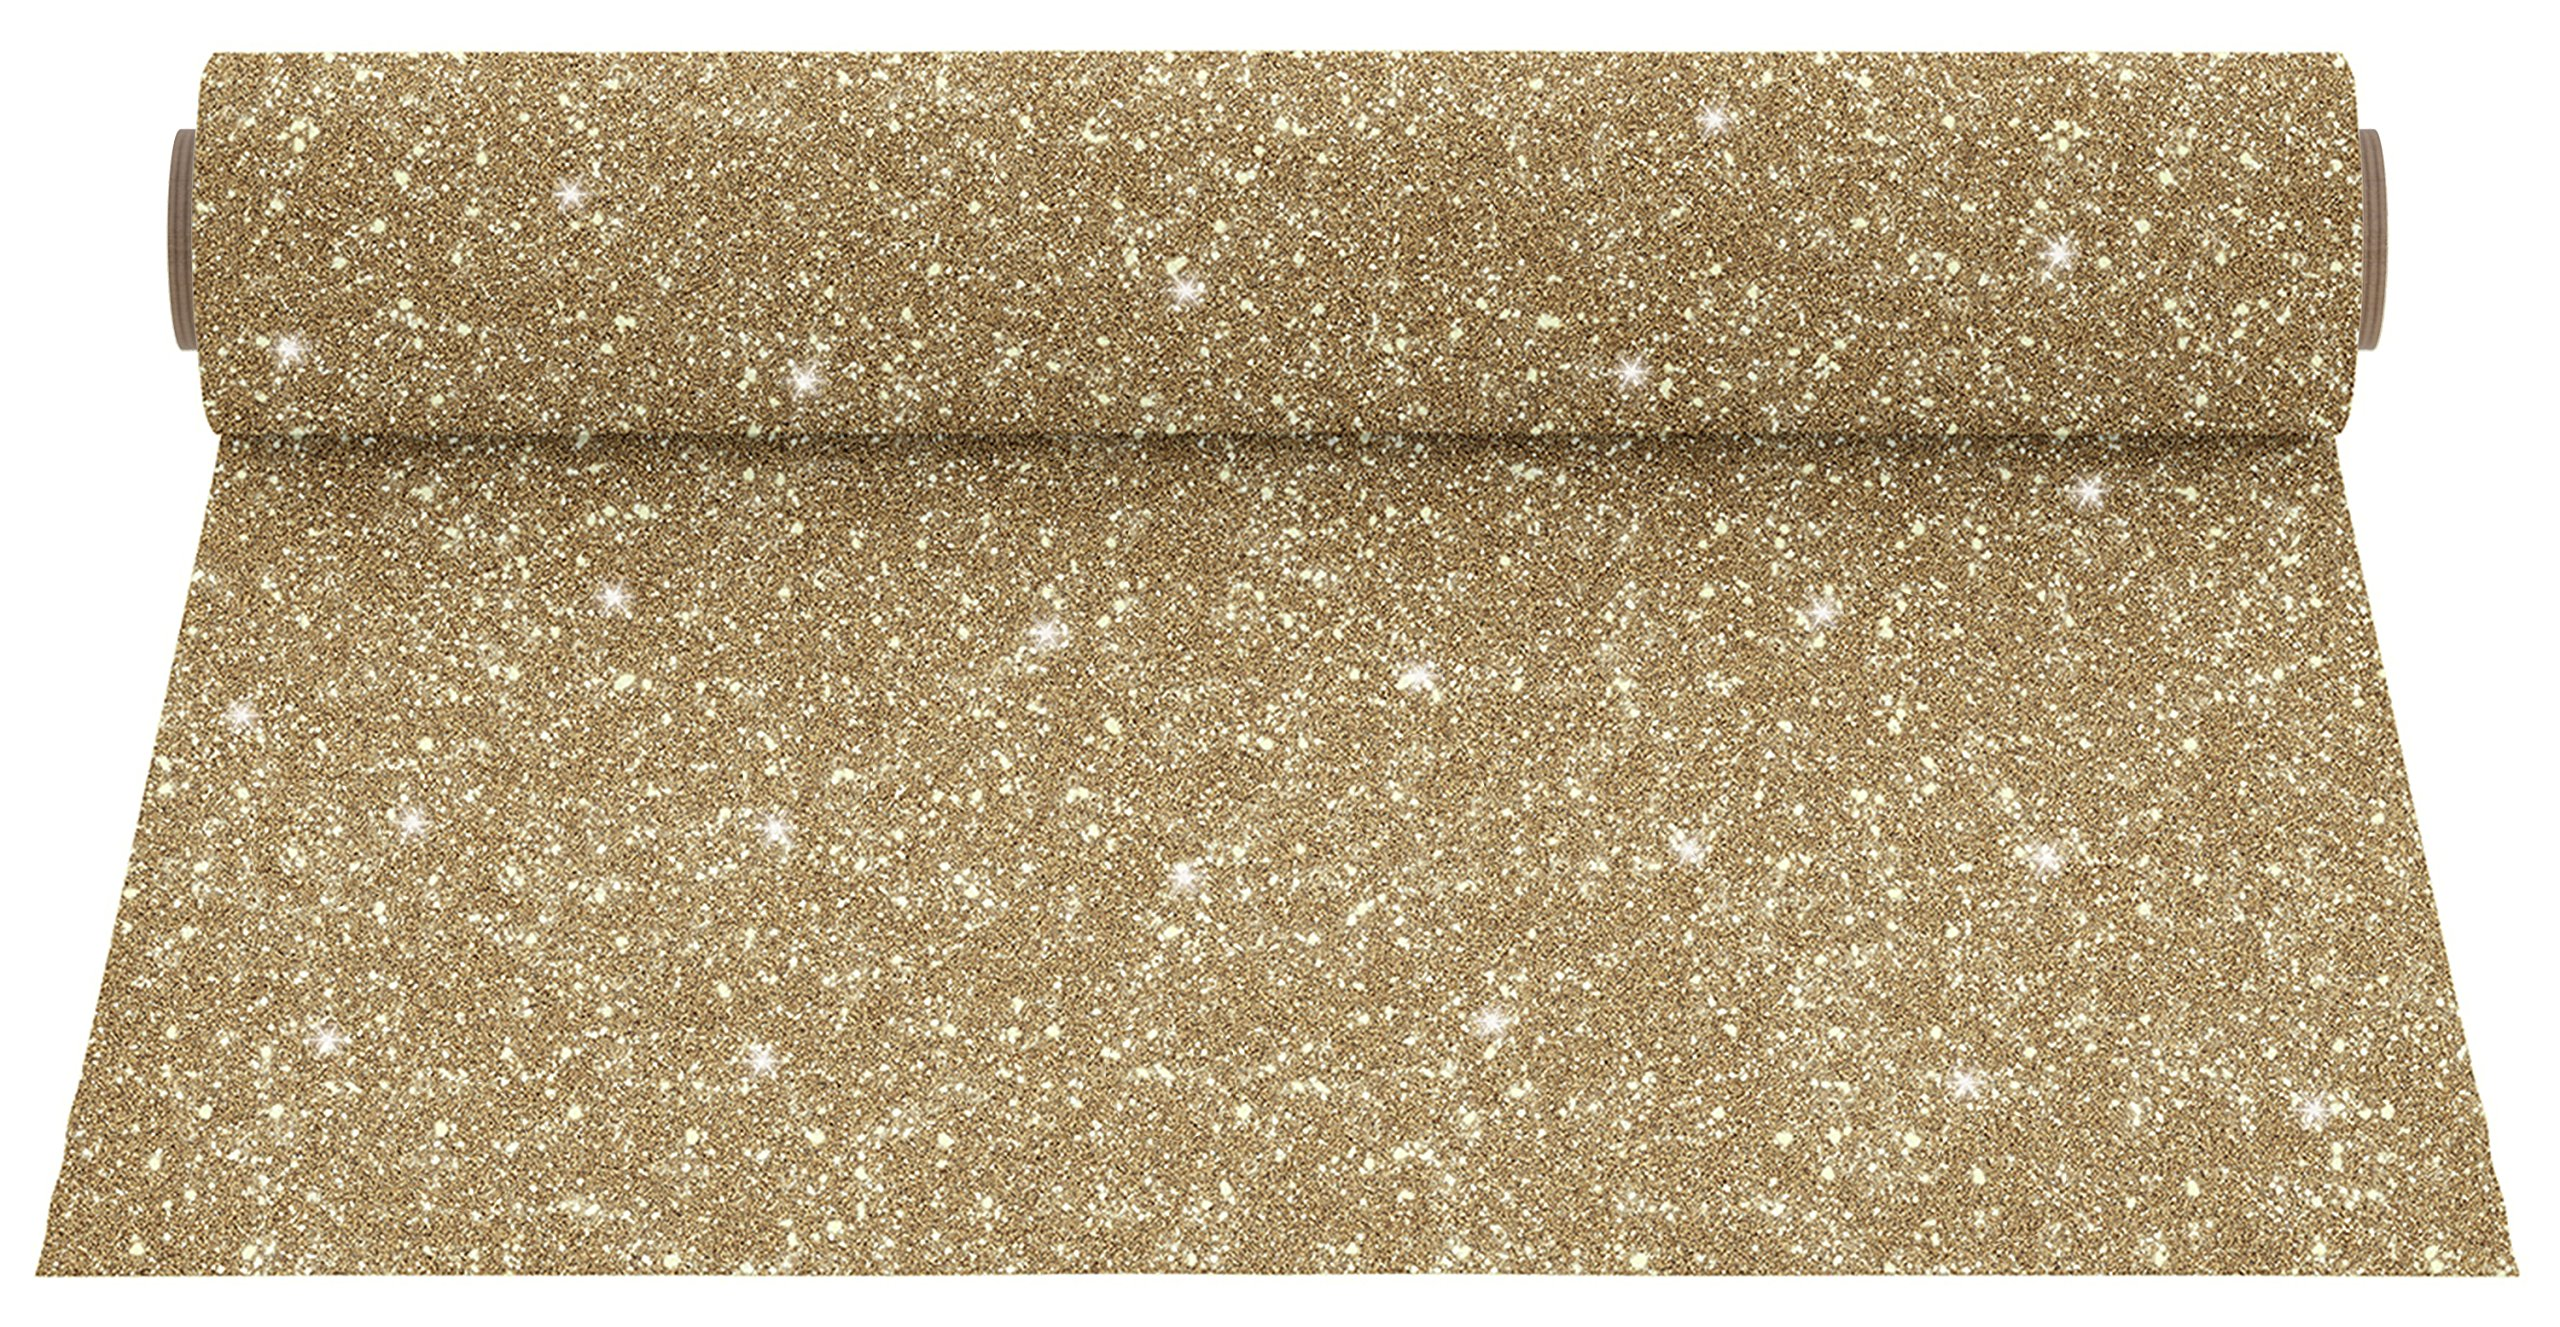 Firefly Craft Glitter Heat Transfer Vinyl for Silhouette and Cricut, 12.5 Inch by 5 Feet Roll, Gold